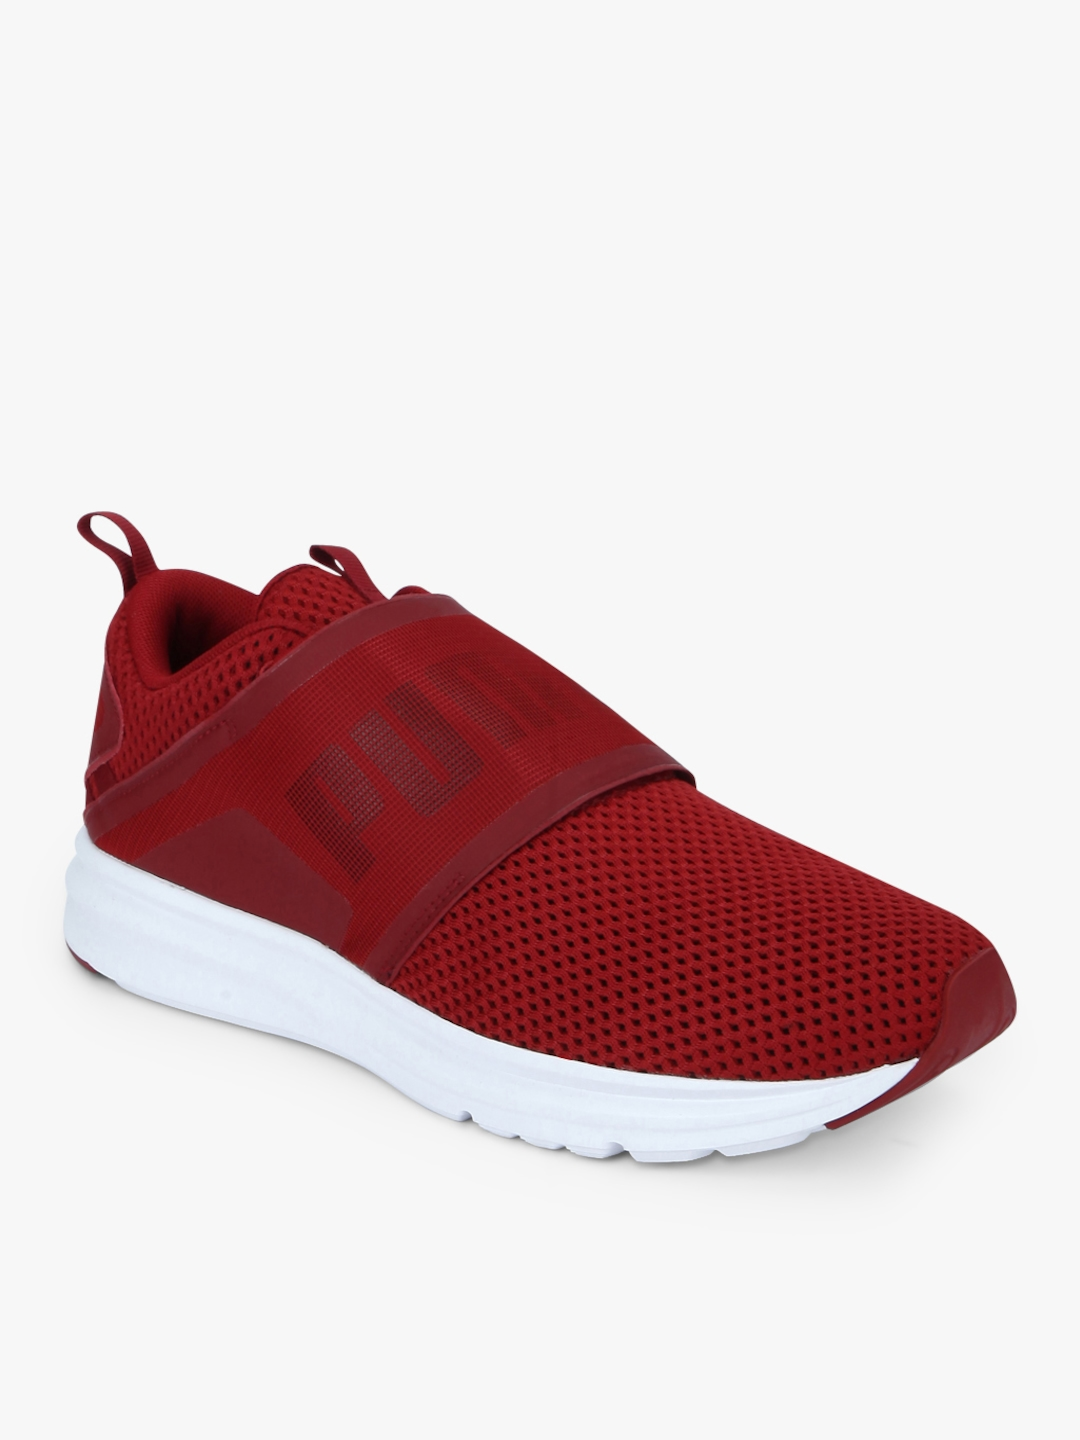 Buy Enzo Strap Mesh Red Sneakers - Casual Shoes for Men 7633855  323b2ee98